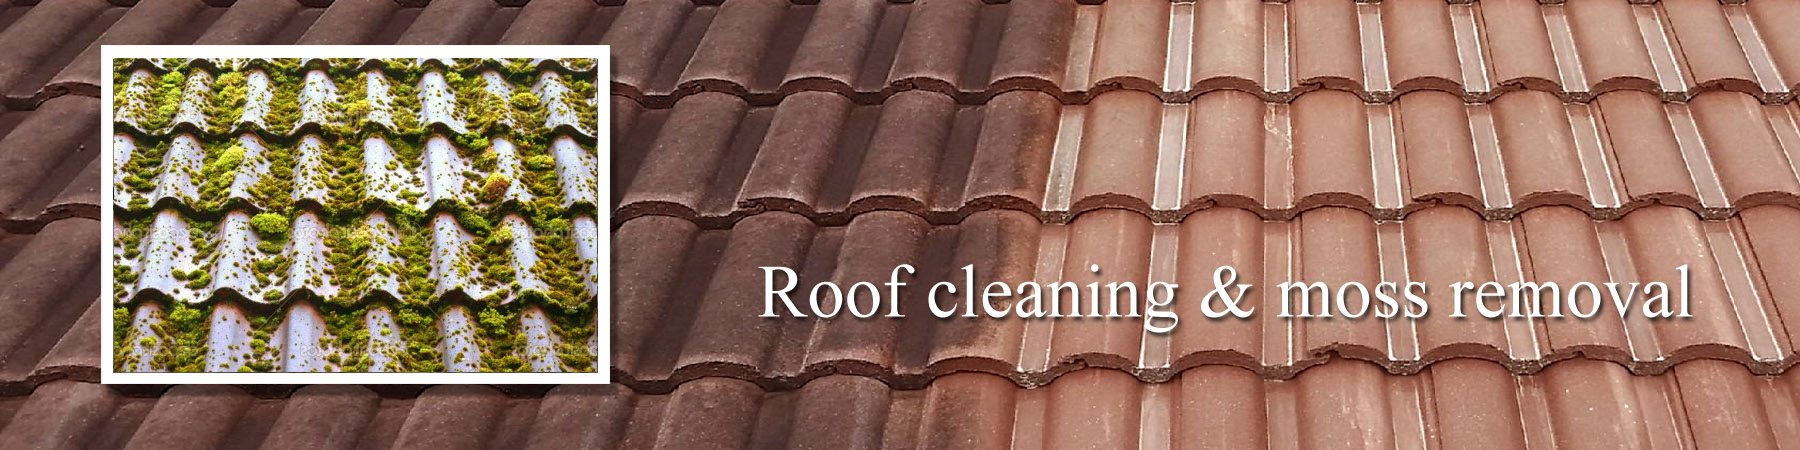 J.R. Roof Cleaning Seaford roof moss removal repairs & coating J R Cleaning